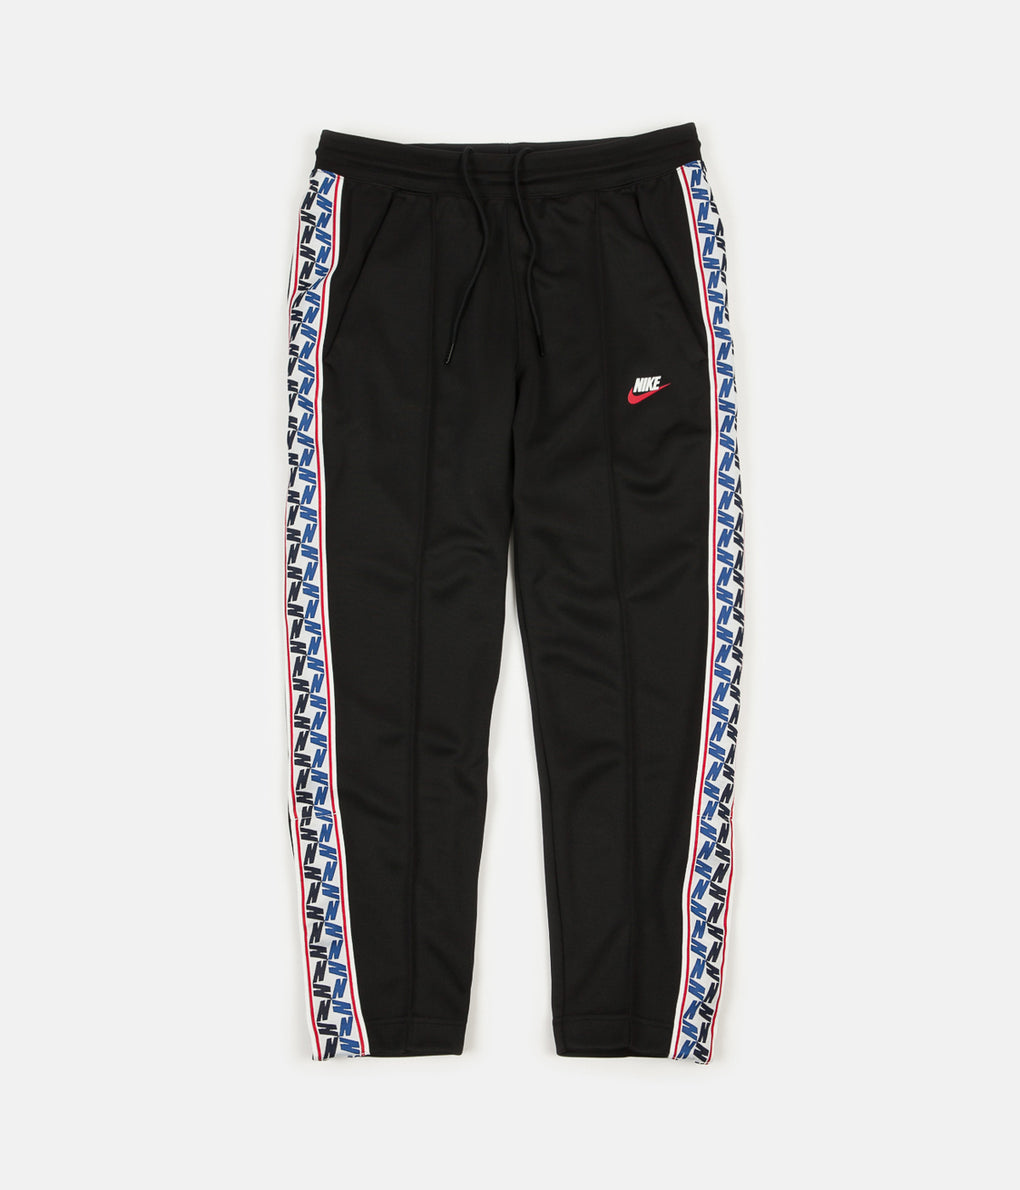 Nike Taped Poly Pants - Black / Sail